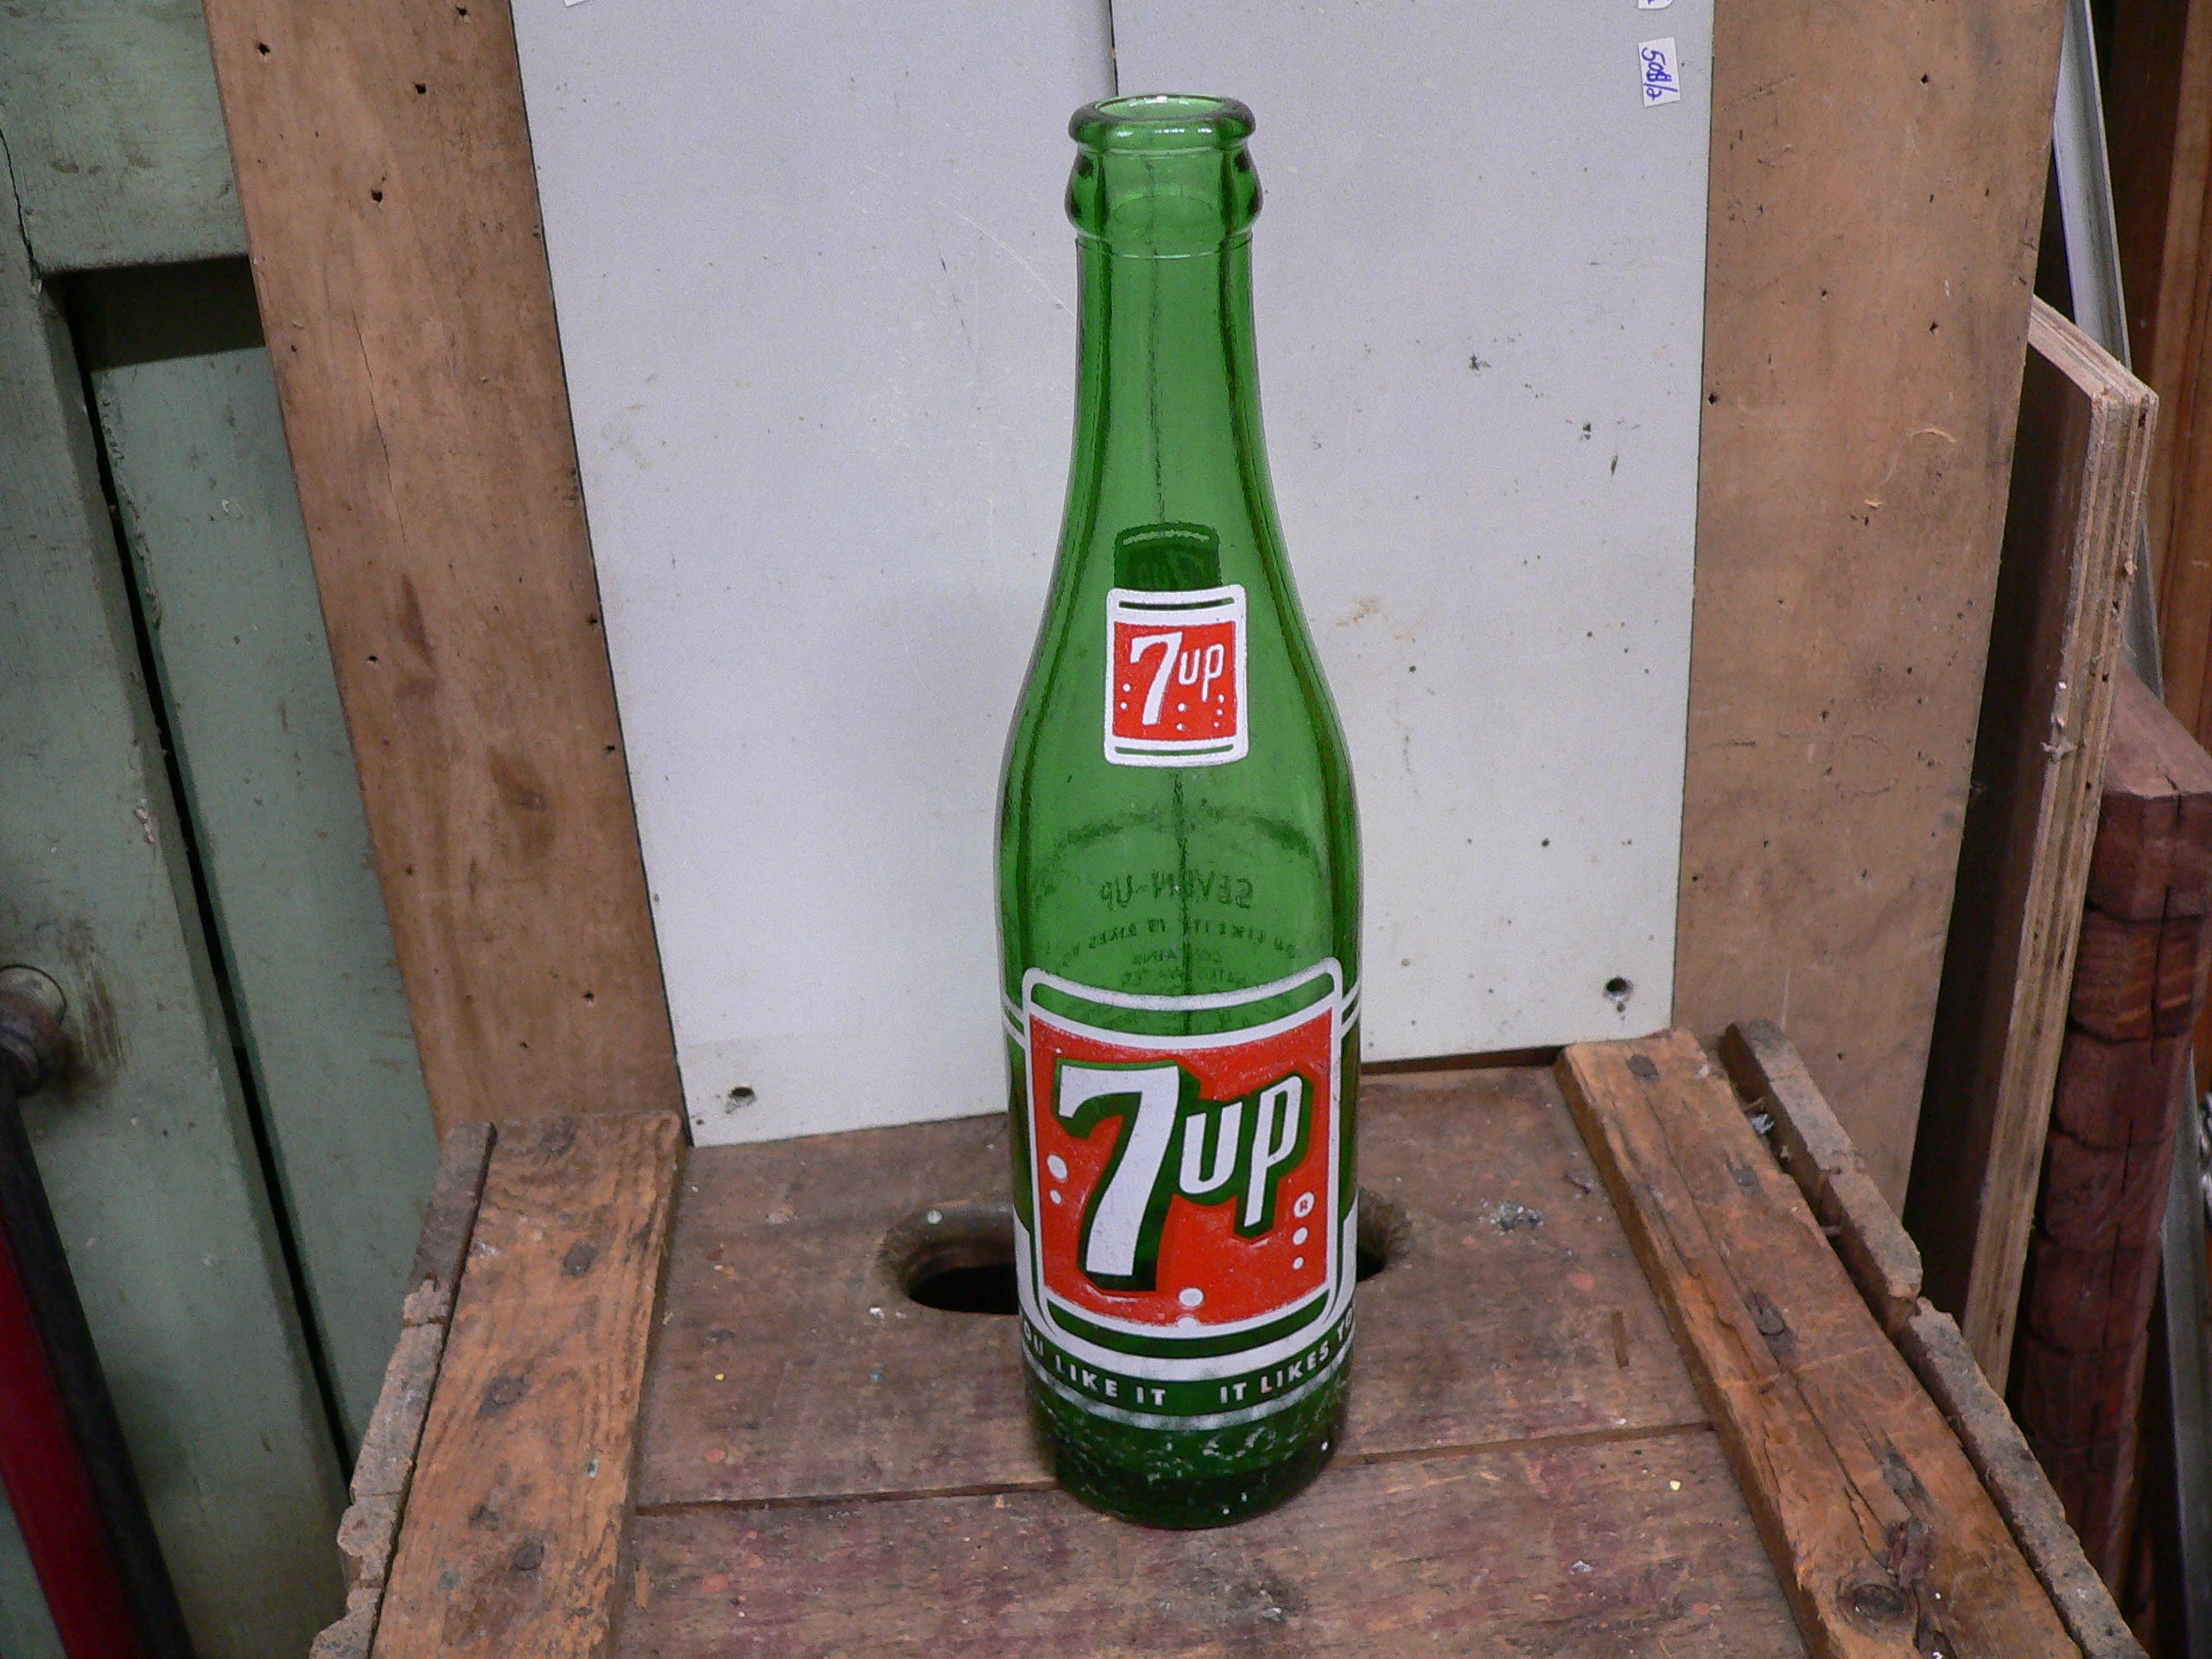 Bouteille 7 up # 5914.3